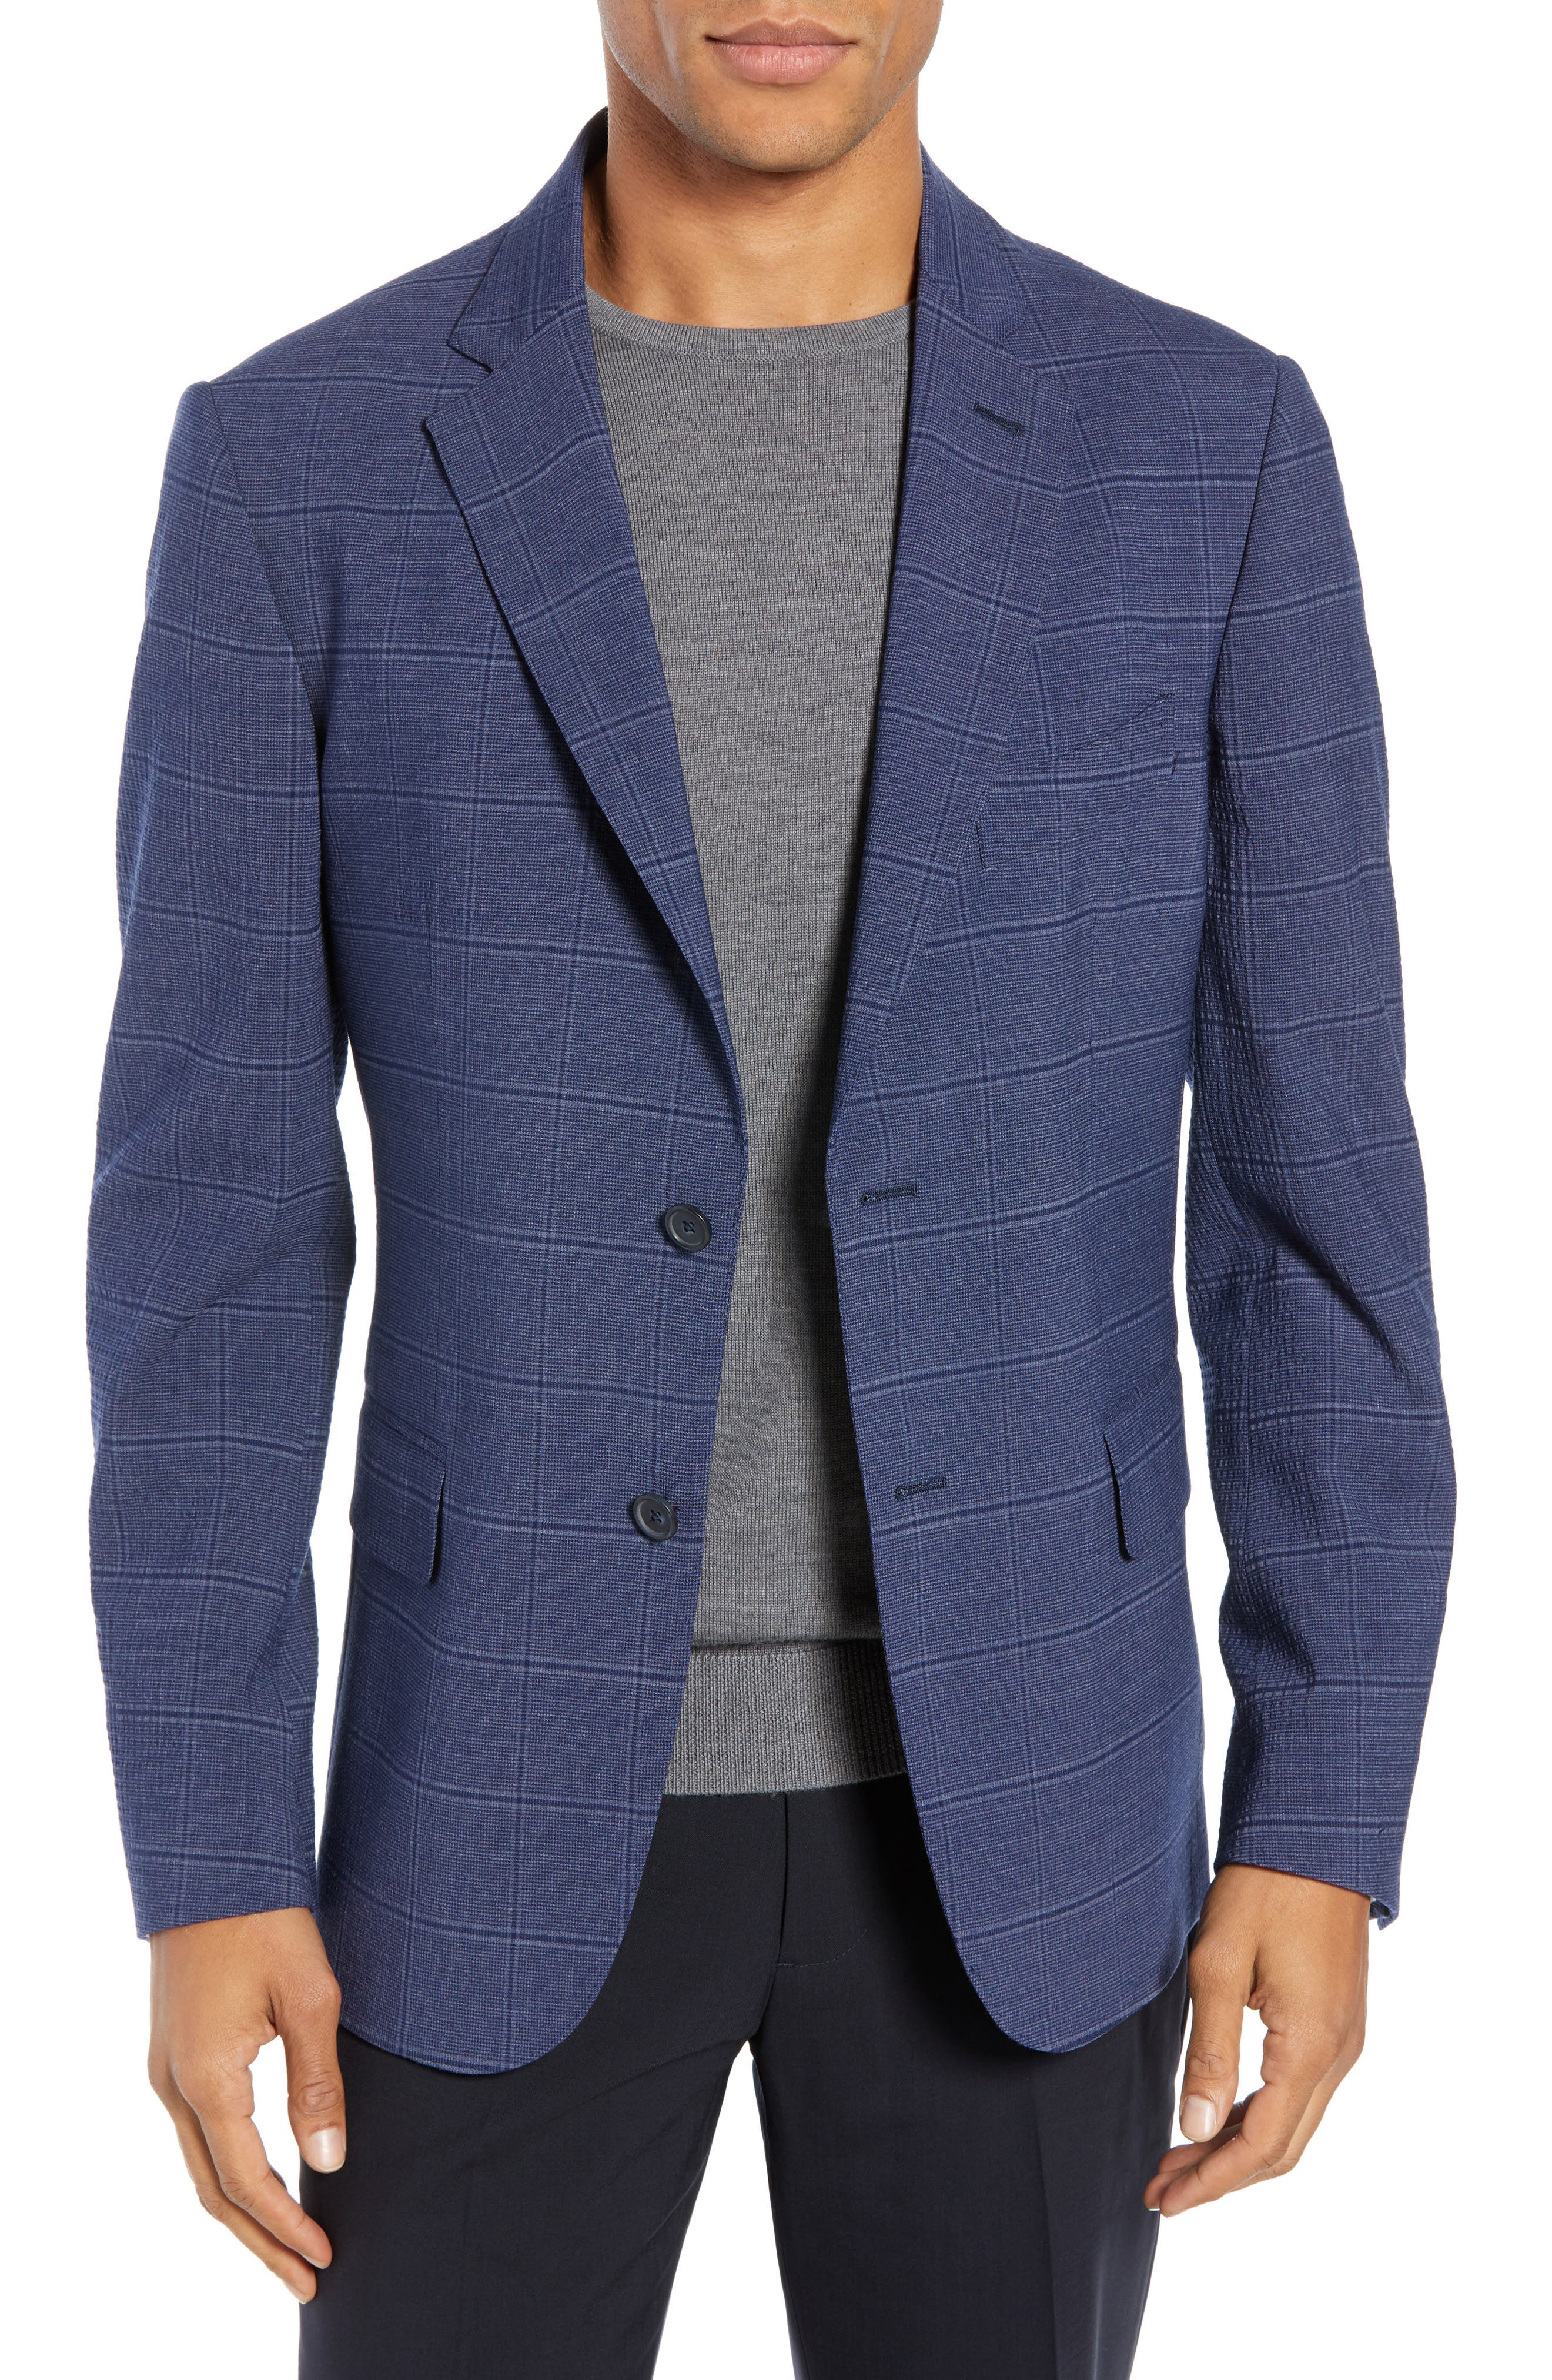 JOHN W. NORDSTROM<SUP>®</SUP>, Classic Fit Stretch Plaid Seersucker Sport Coat, Main thumbnail 1, color, 420